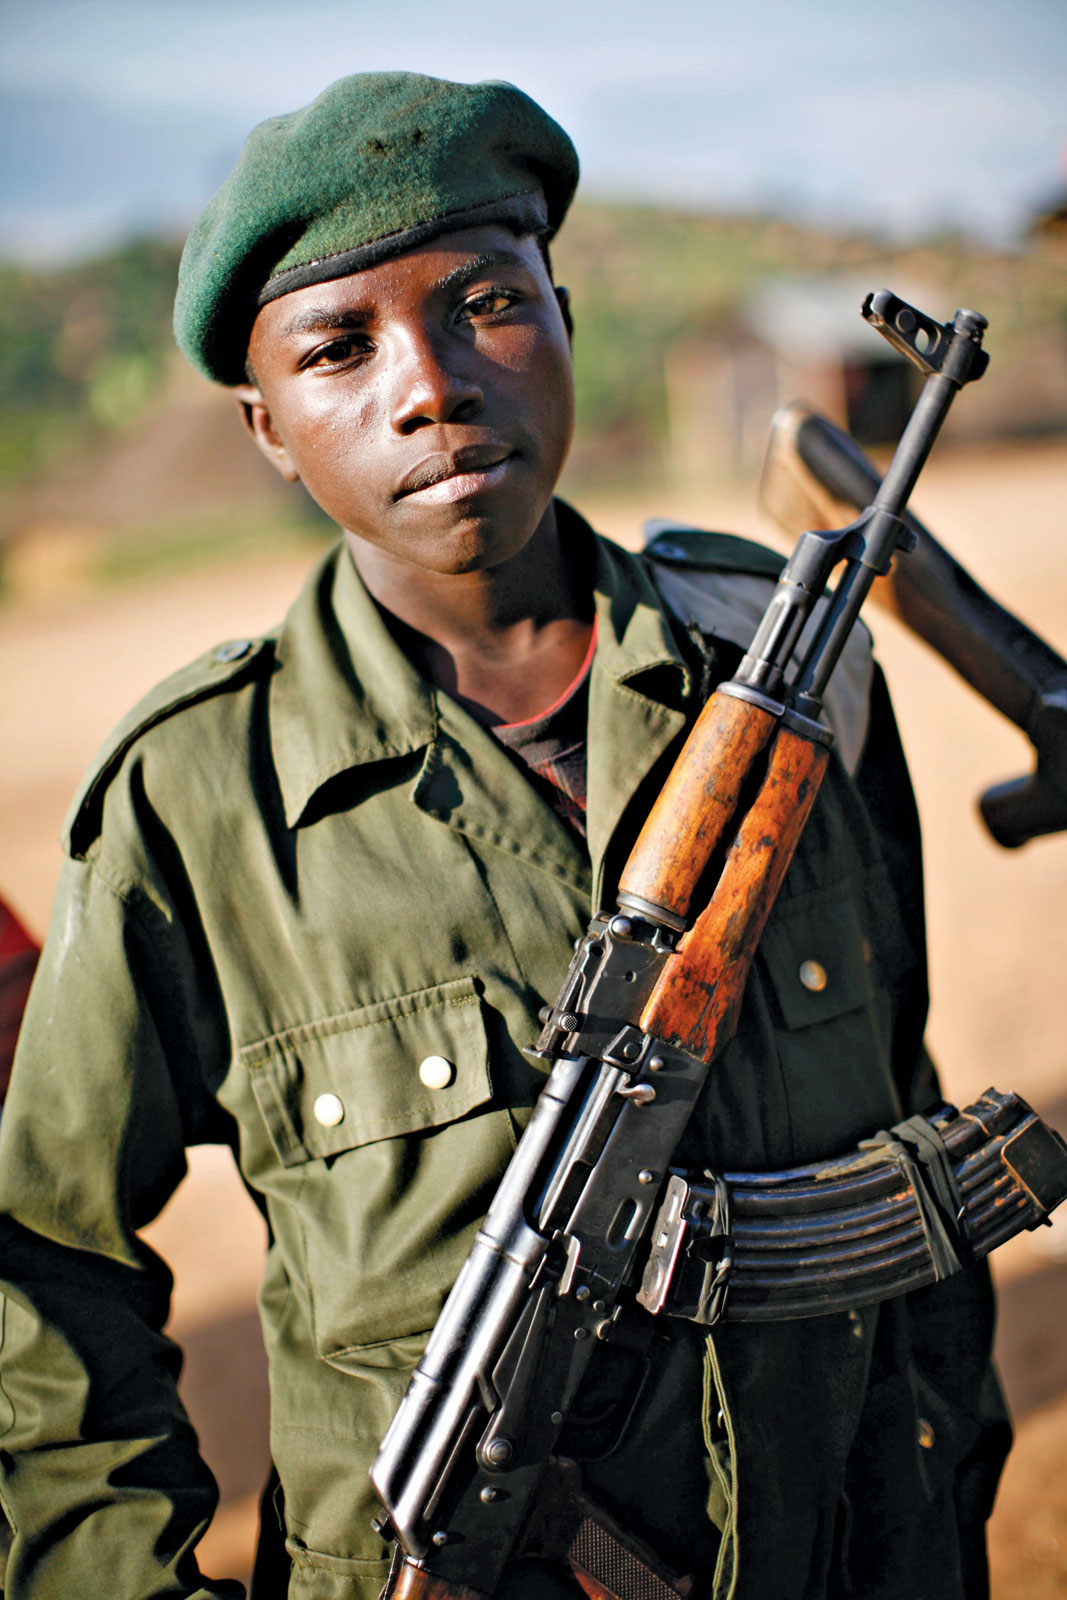 Buy Presentation Western Medias Obsession With The Portrayal Of Child Soldiers Seem At  First Glance Not Only Understandable But Expected That Is It Seems To  Stem Out Of  Public Health Essays also Business Plan Writers Mississauga Quick Essay  Child Soldiers  A History Blog Universal Health Care Essay